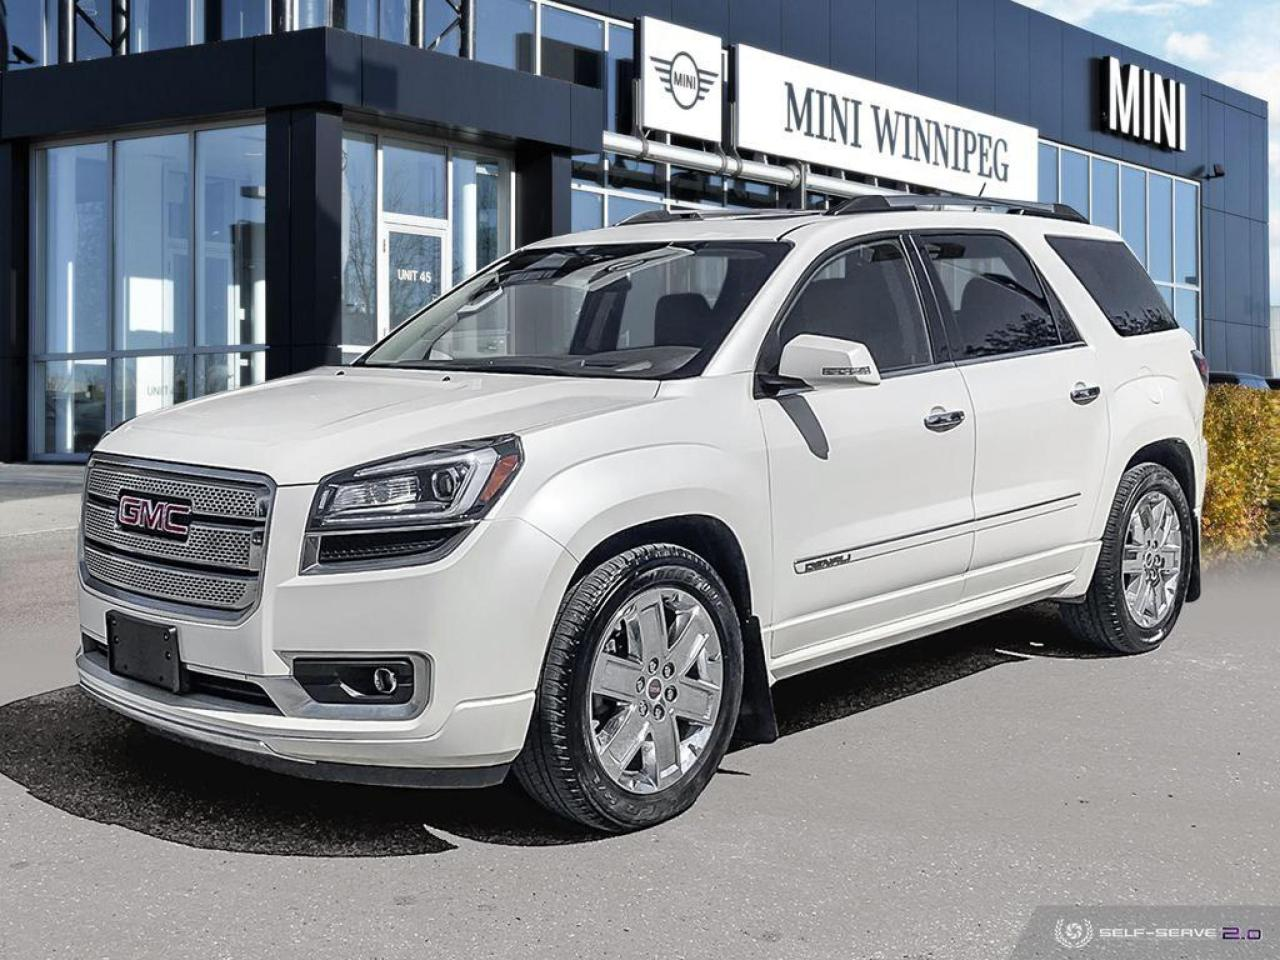 used 2015 gmc acadia denali amazing condition for sale in winnipeg, manitoba carpages.ca